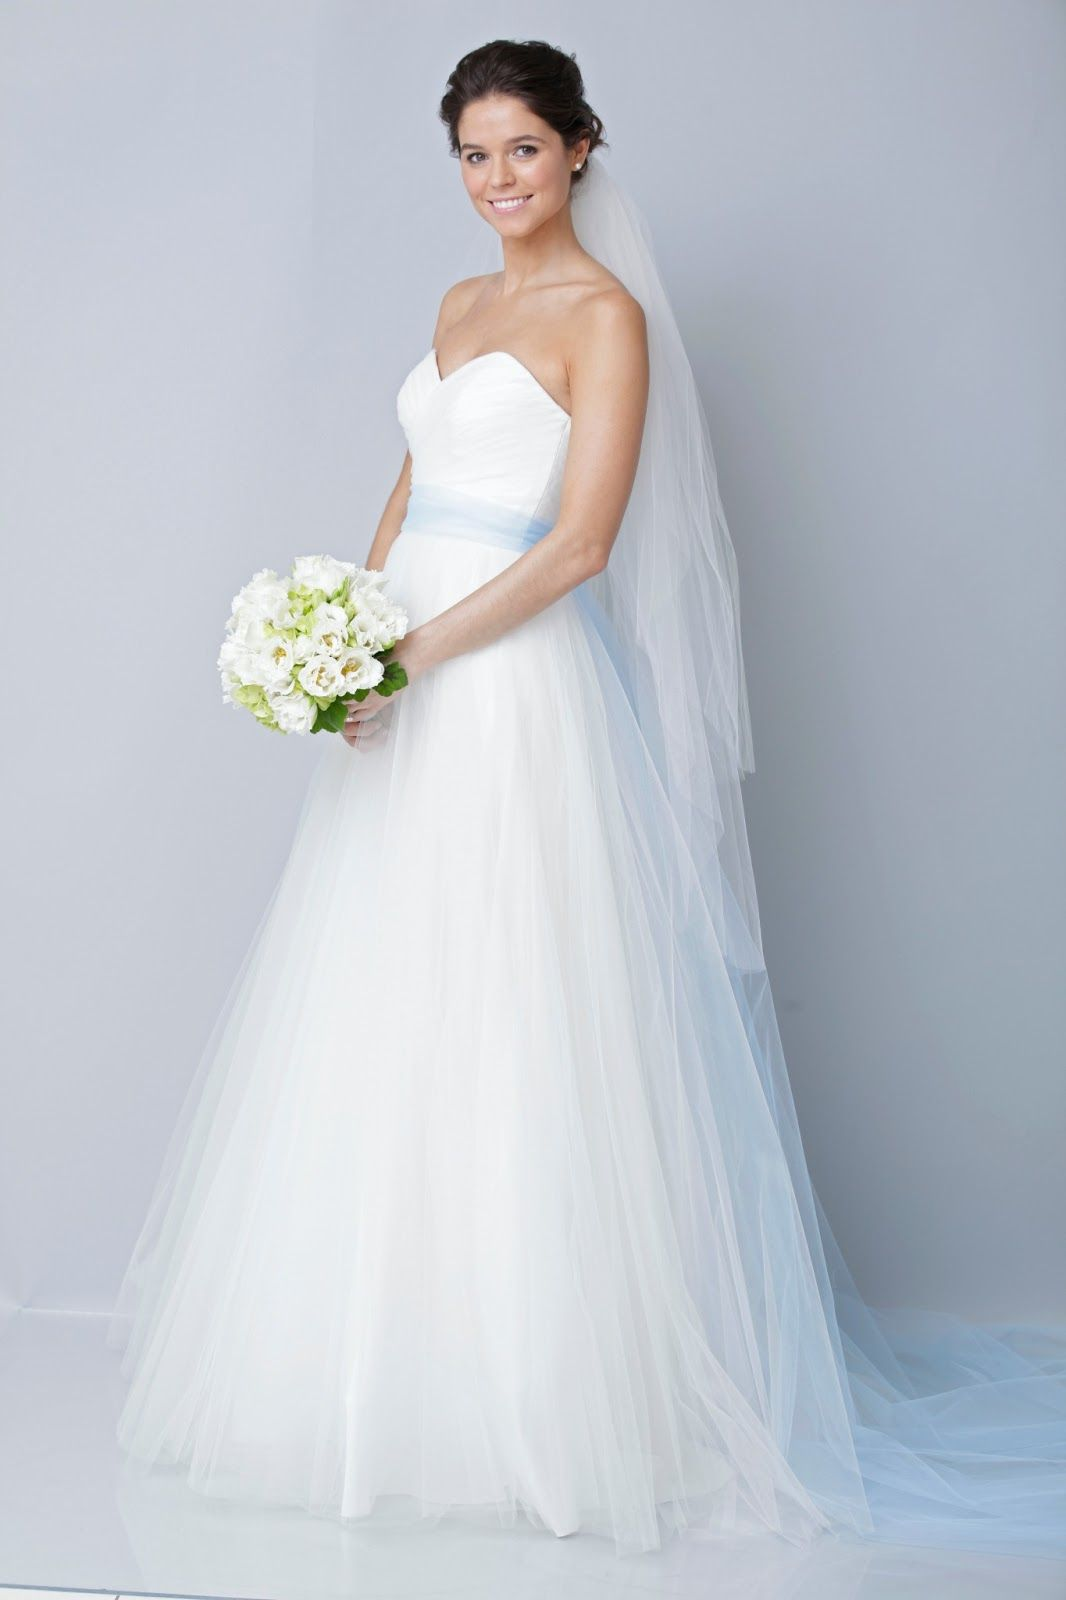 White Dress for Wedding - How to Dress for A Wedding Check more at ...